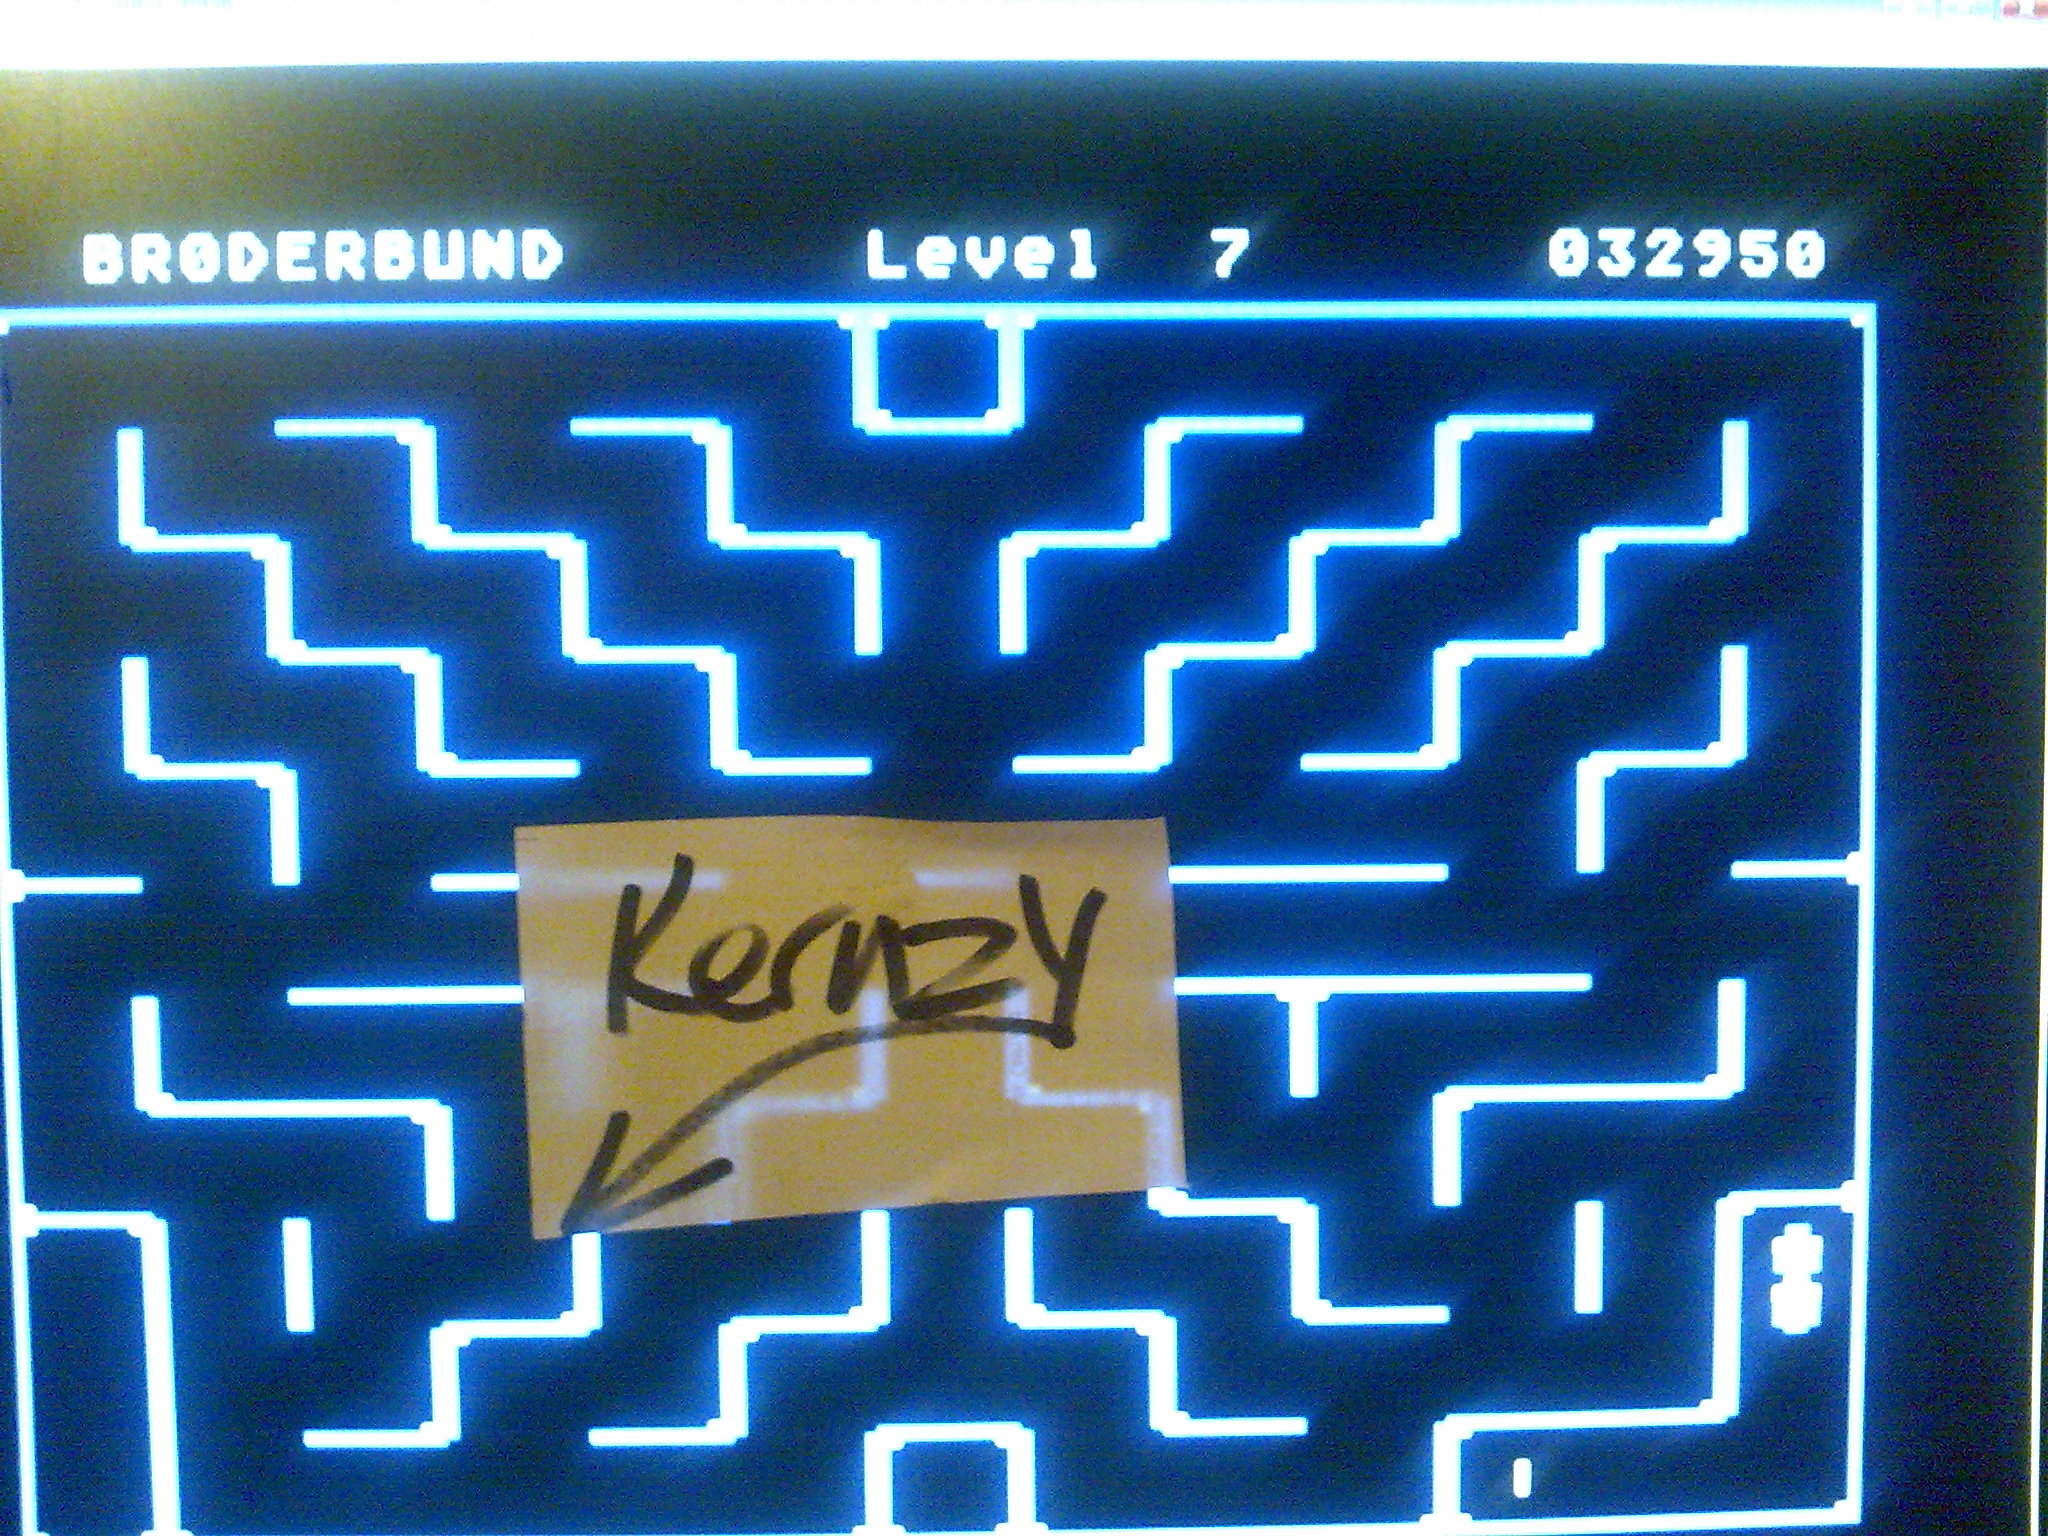 kernzy: Serpentine (Atari 400/800/XL/XE Emulated) 32,950 points on 2014-10-17 20:57:45